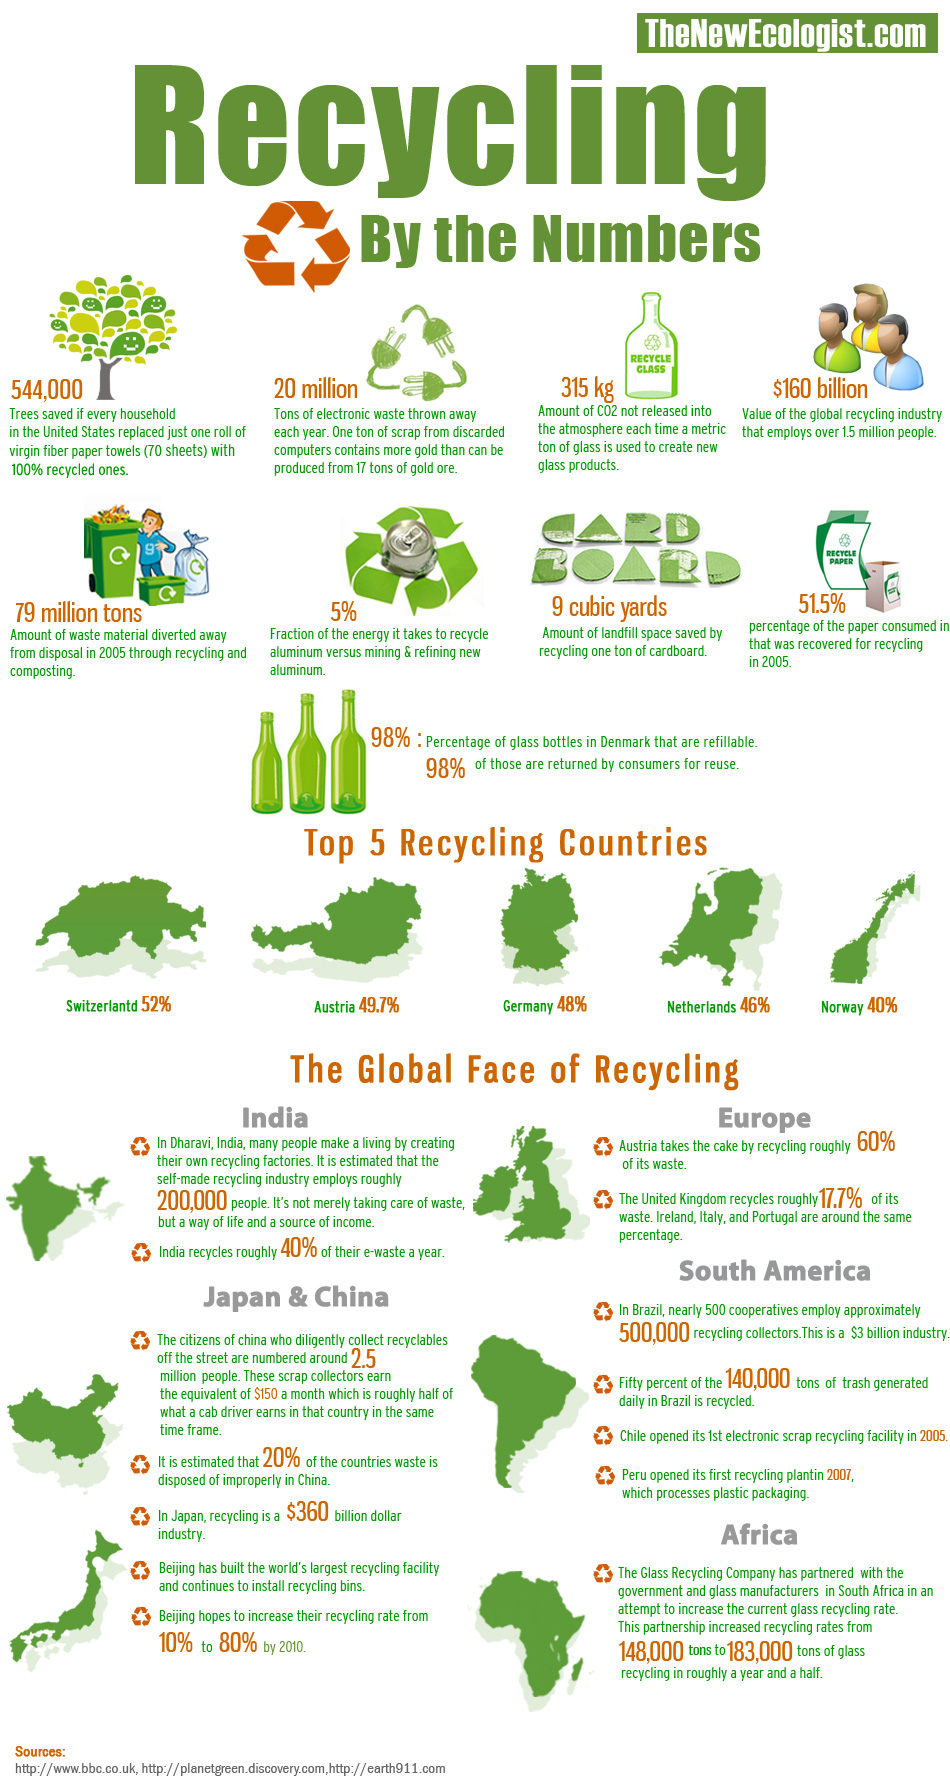 recycle essay for kids Recycling is one of the best ways for you to have a positive impact on the world in which we live recycling is important to both the natural environment and us we must act fast as the amount of waste we create is increasing all the time the amount of rubbish we create is constantly increasing because: increasing wealth.